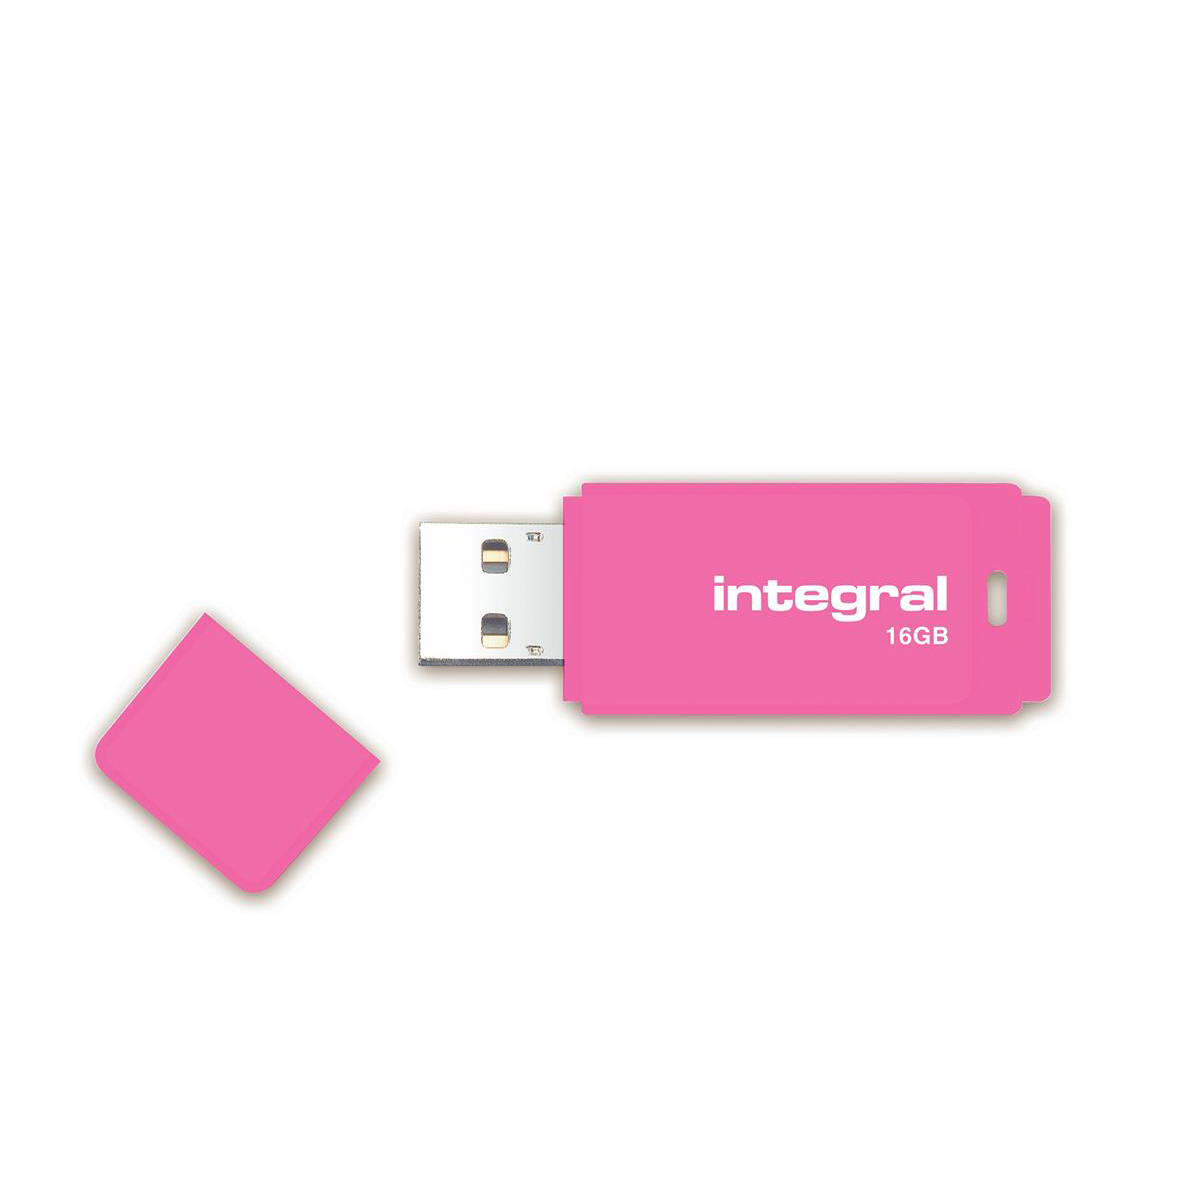 Pen or flash drive Integral Neon USB Drive 2.0 Capacity 16GB Pink Ref INFD16GBNEONPK